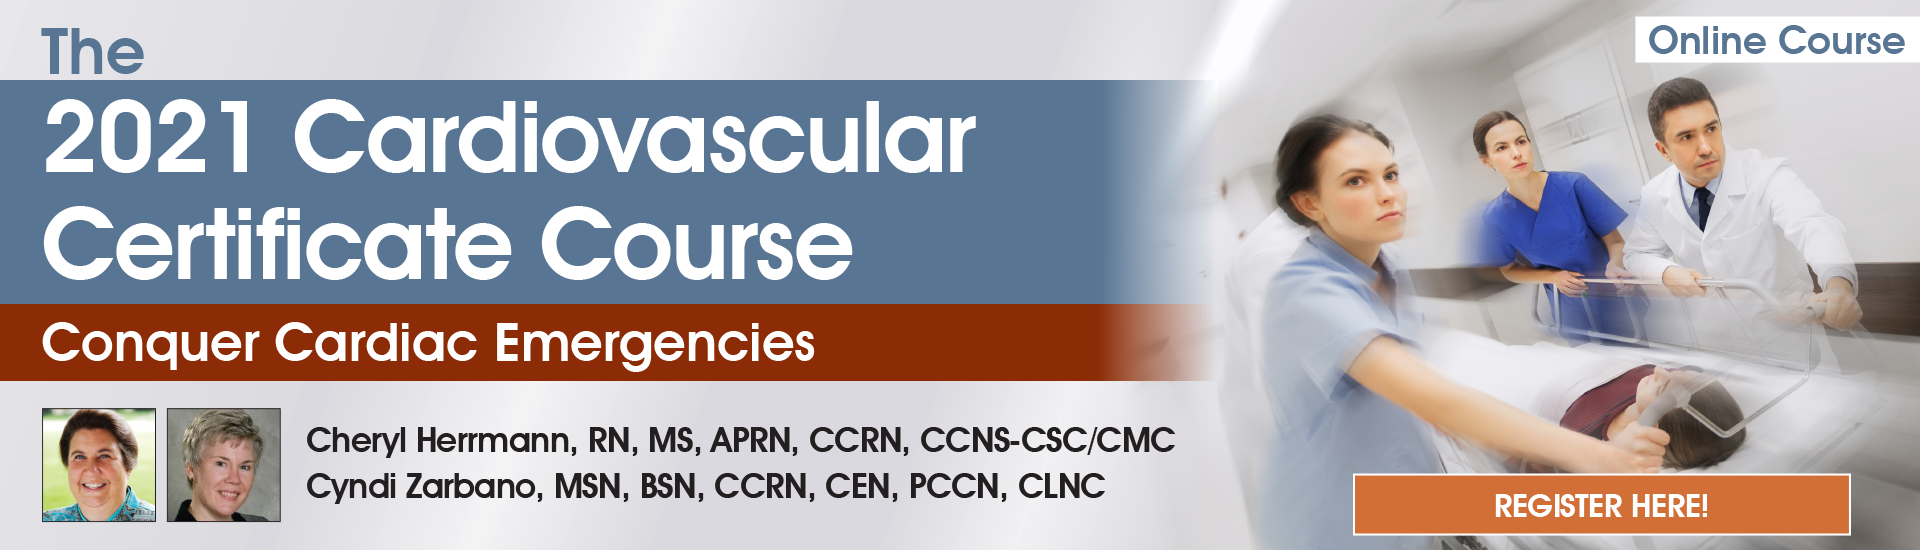 The Complete Cardiovascular Certificate Course: Conquer the Deteriorating Cardiac Patient